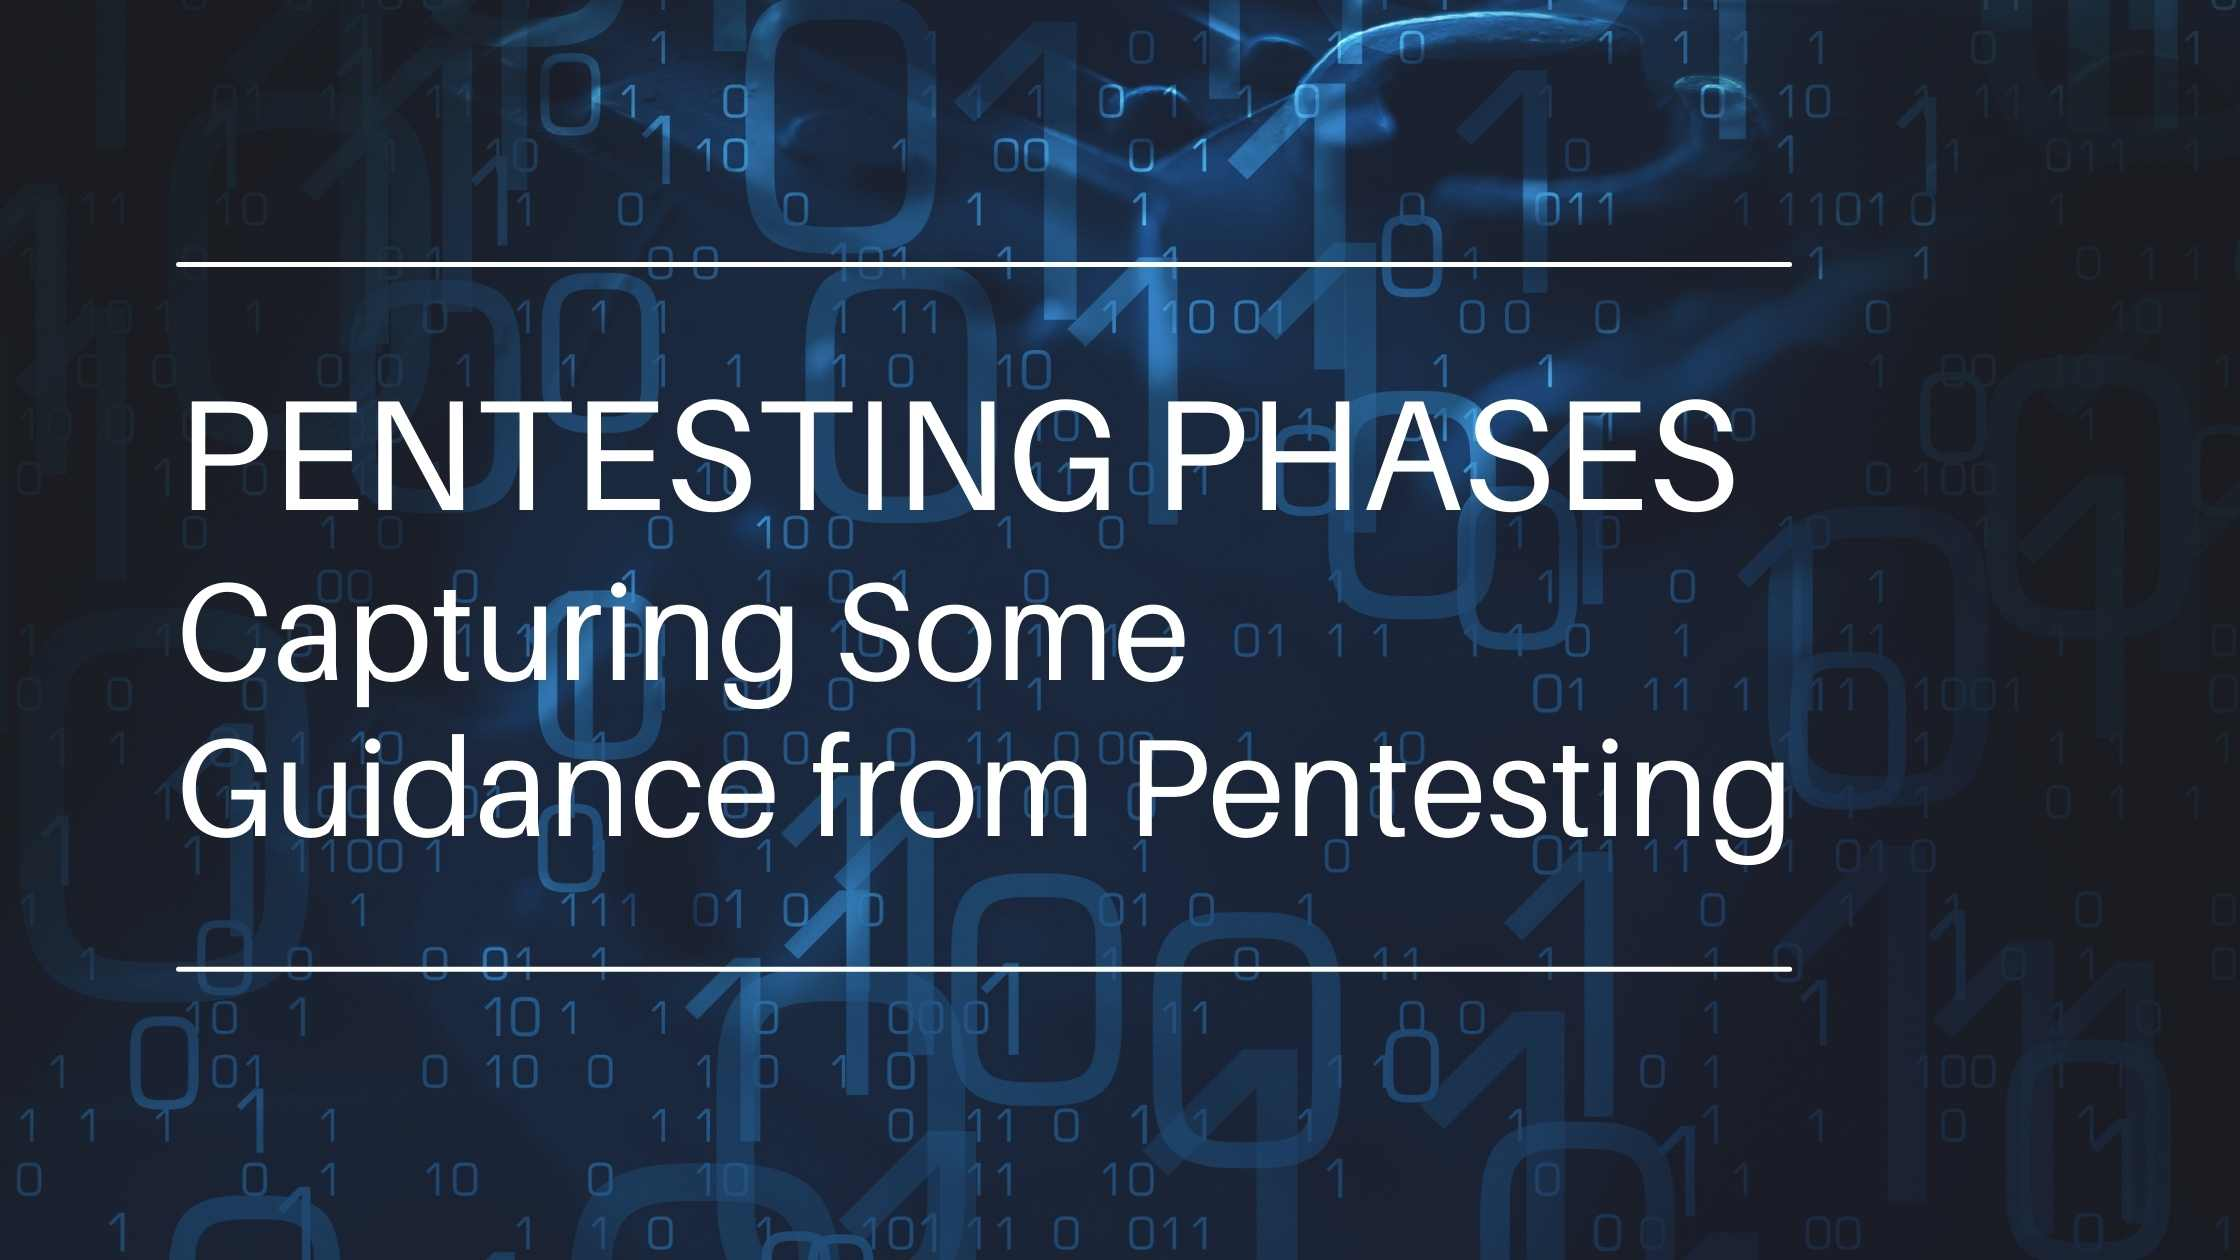 Dark blue background with binary numbers; Text 'Pentesting Phases - Capturing Some Guidance from Pentesting'